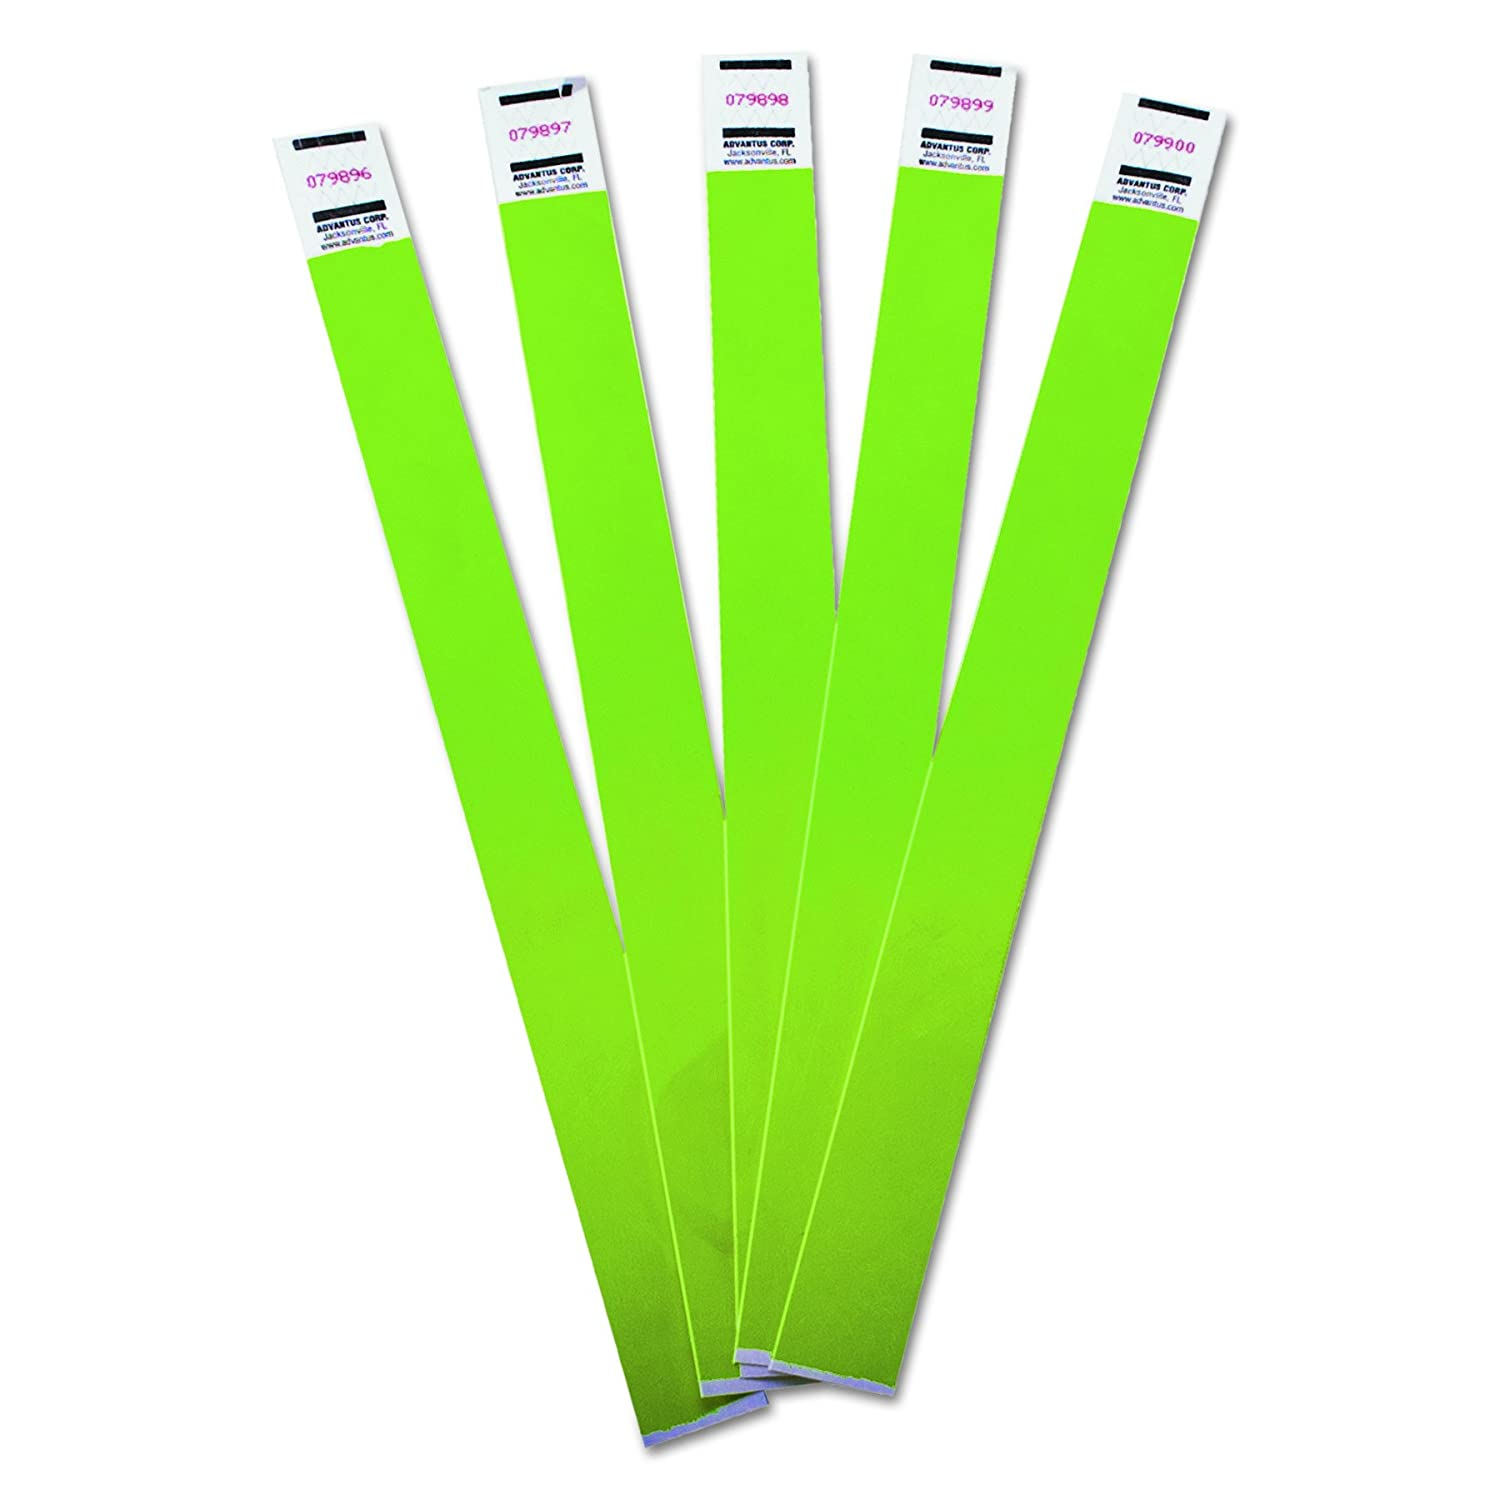 Advantus Crowd Management Tyvek Wristbands, Sequentially Numbered, Green, Pack of 500, AVT75511